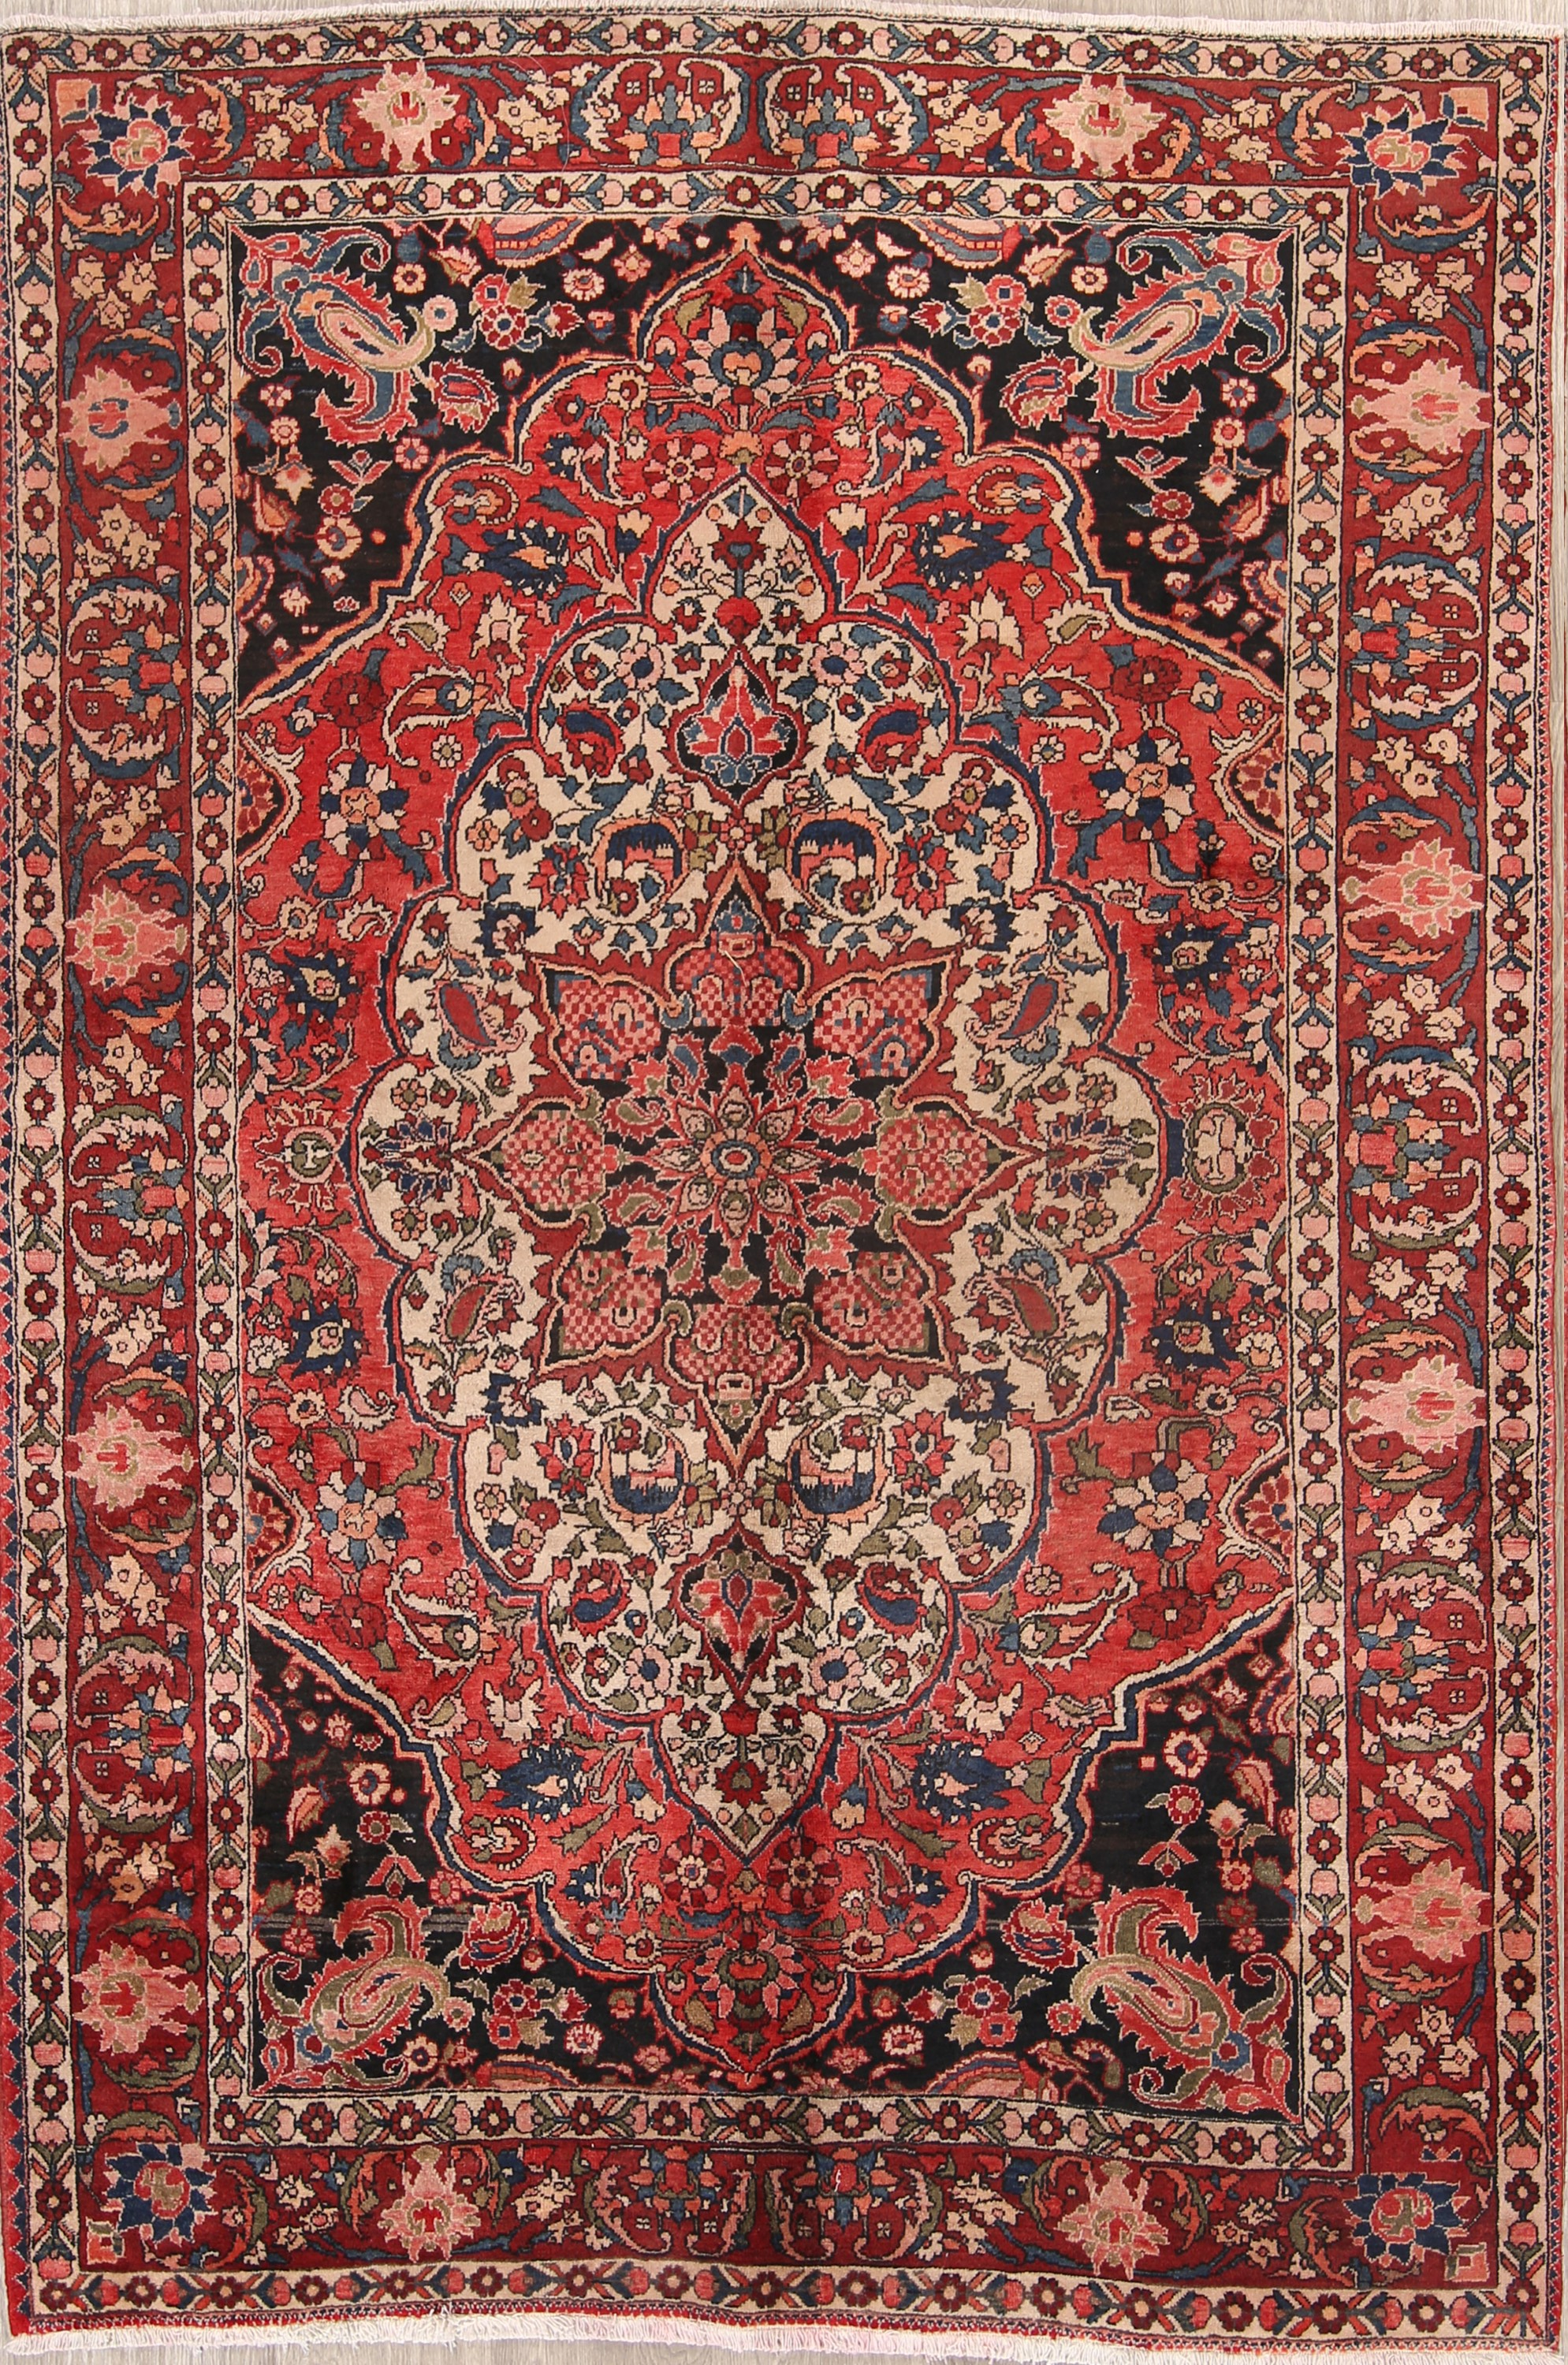 Decorative 7x10 Bakhtiari Persian Area Rug